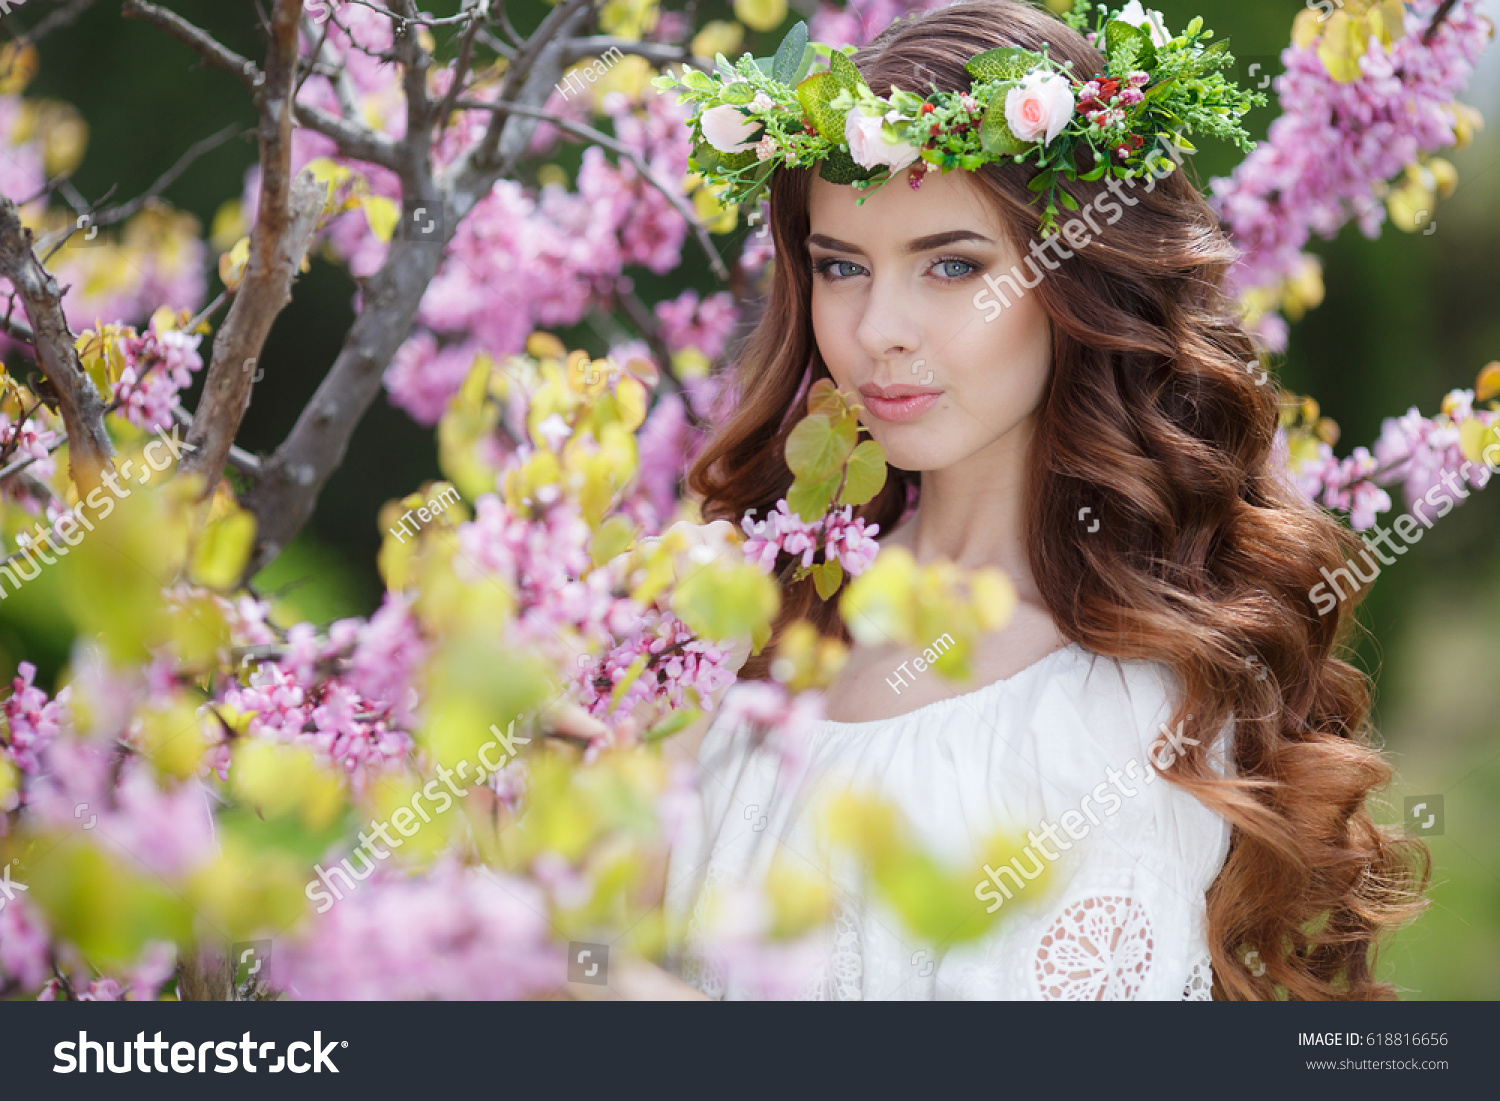 Spring woman flowers beautiful woman flower stock photo royalty spring woman in flowers beautiful woman with flower wreath portrait of young beautiful woman izmirmasajfo Image collections